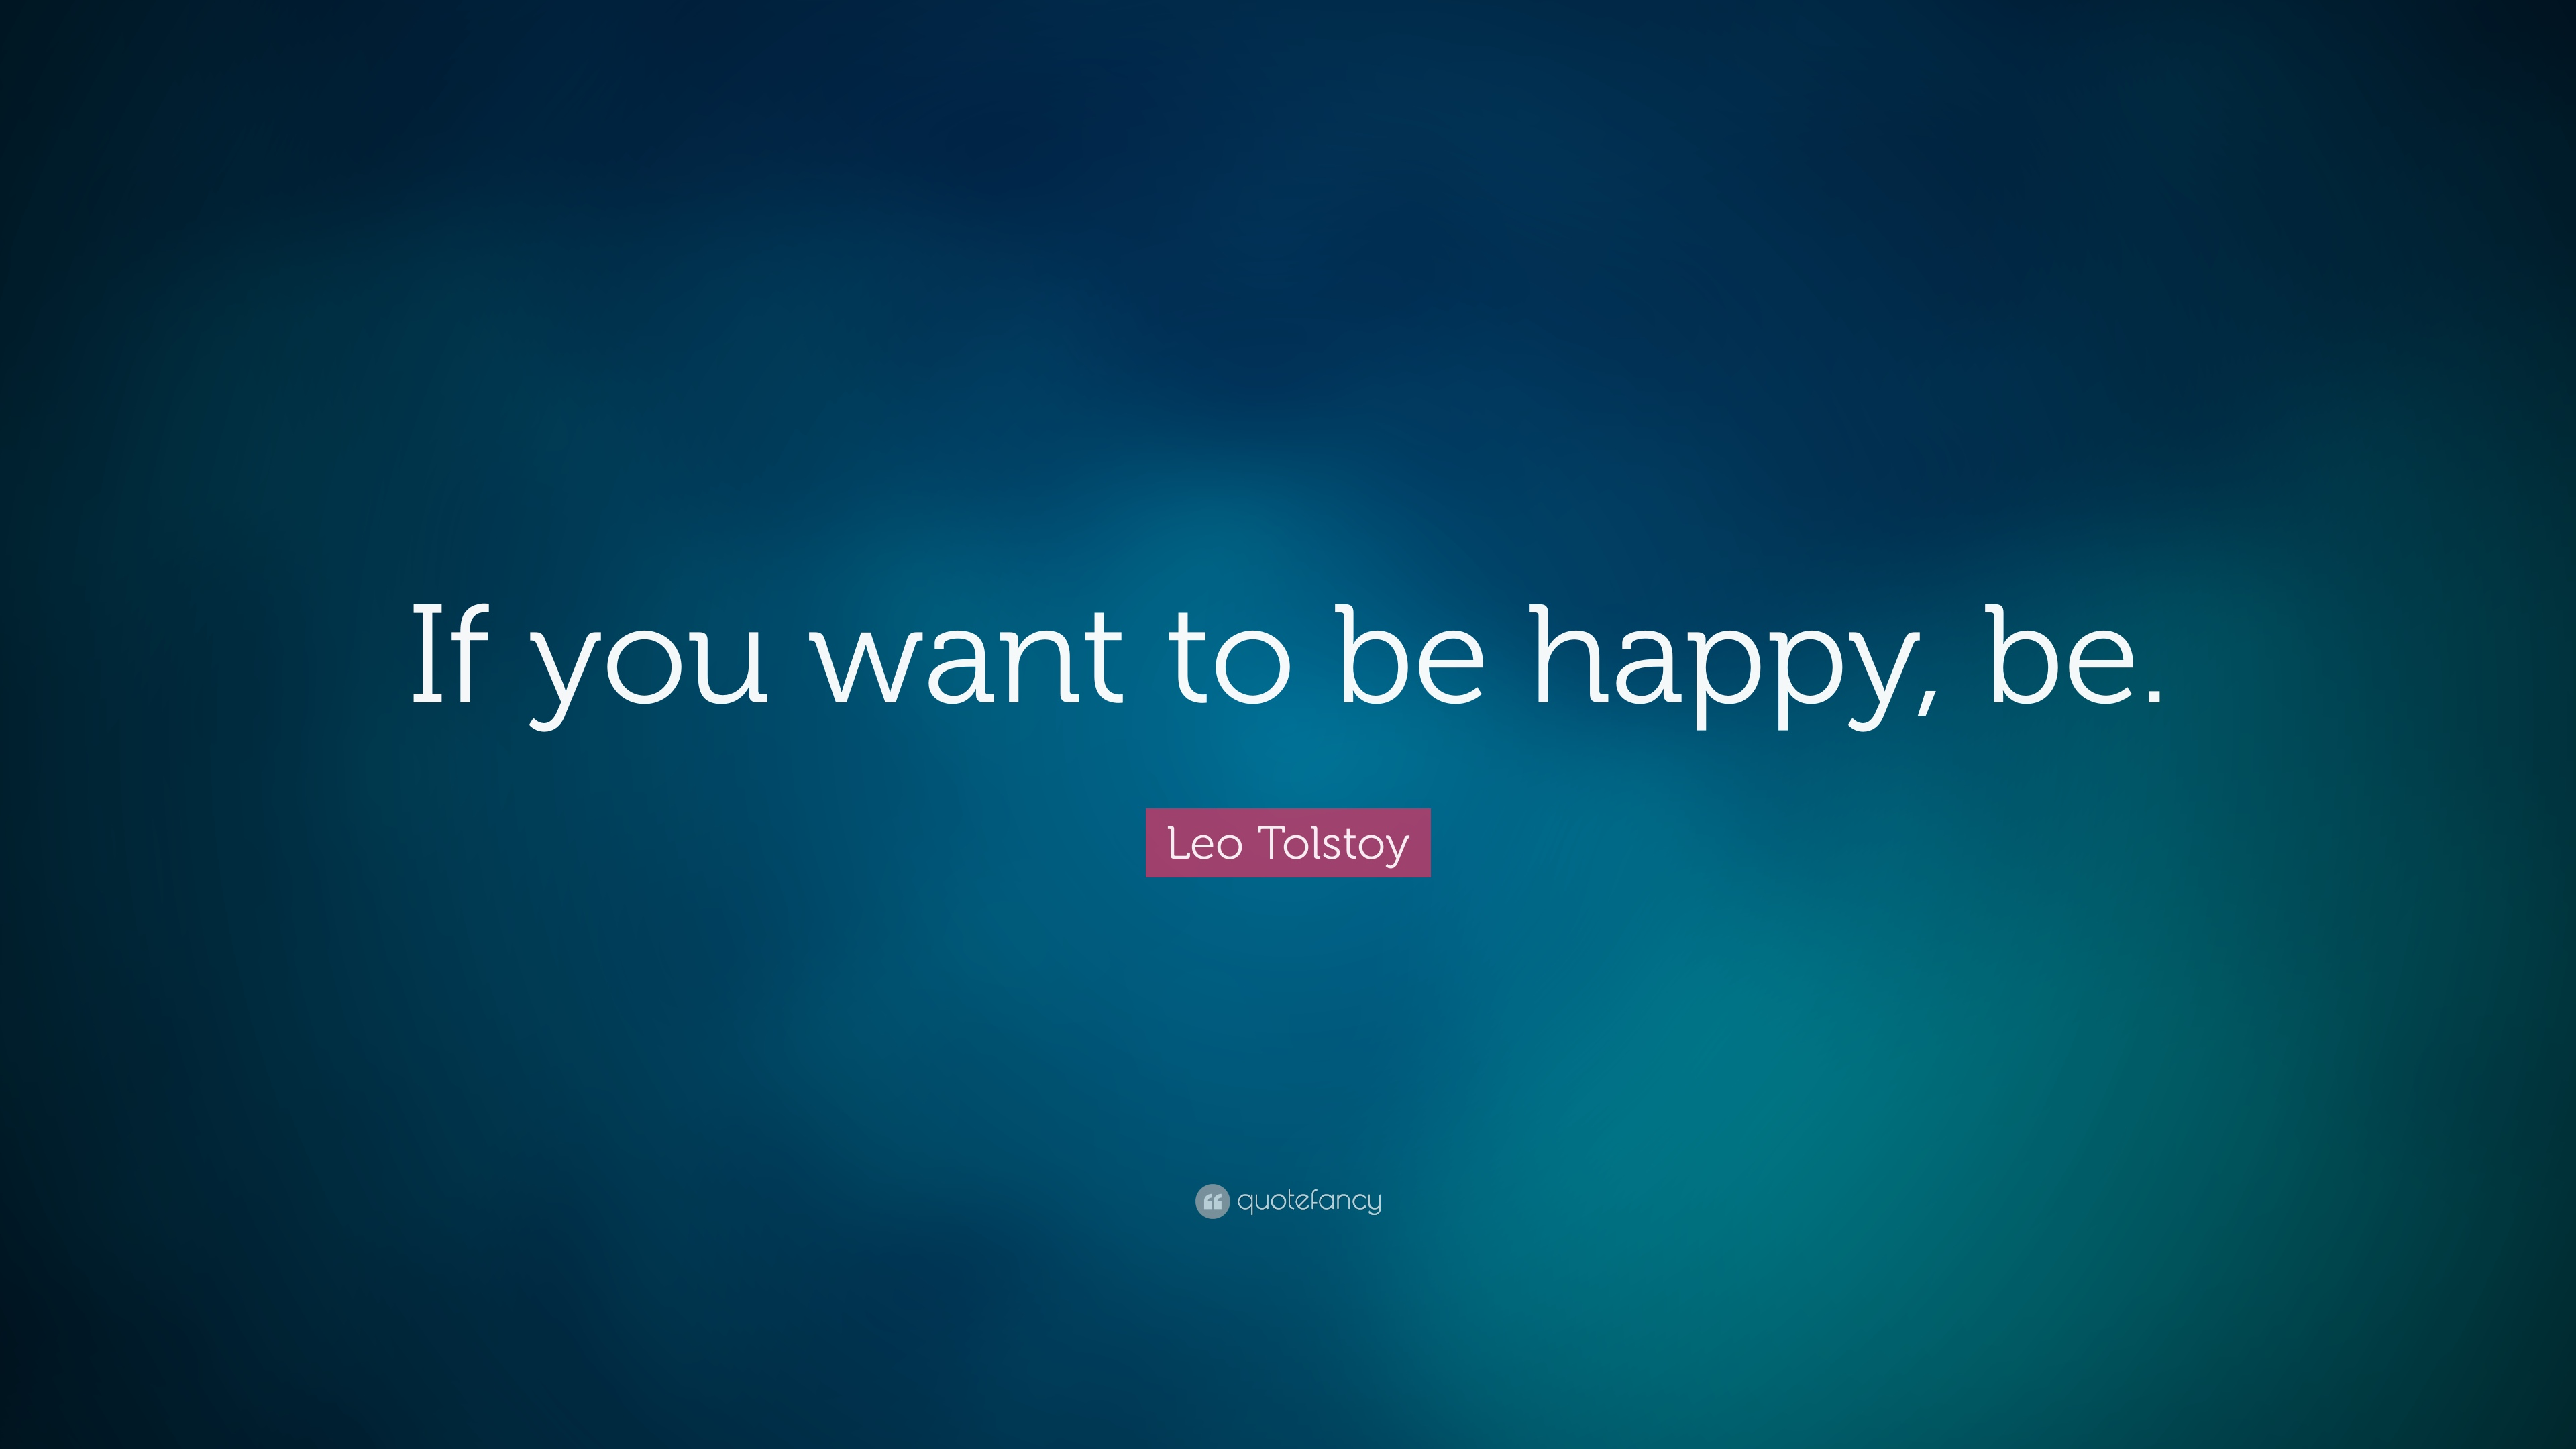 Leo Tolstoy Quote If You Want To Be Happy Be 23 Wallpapers Quotefancy